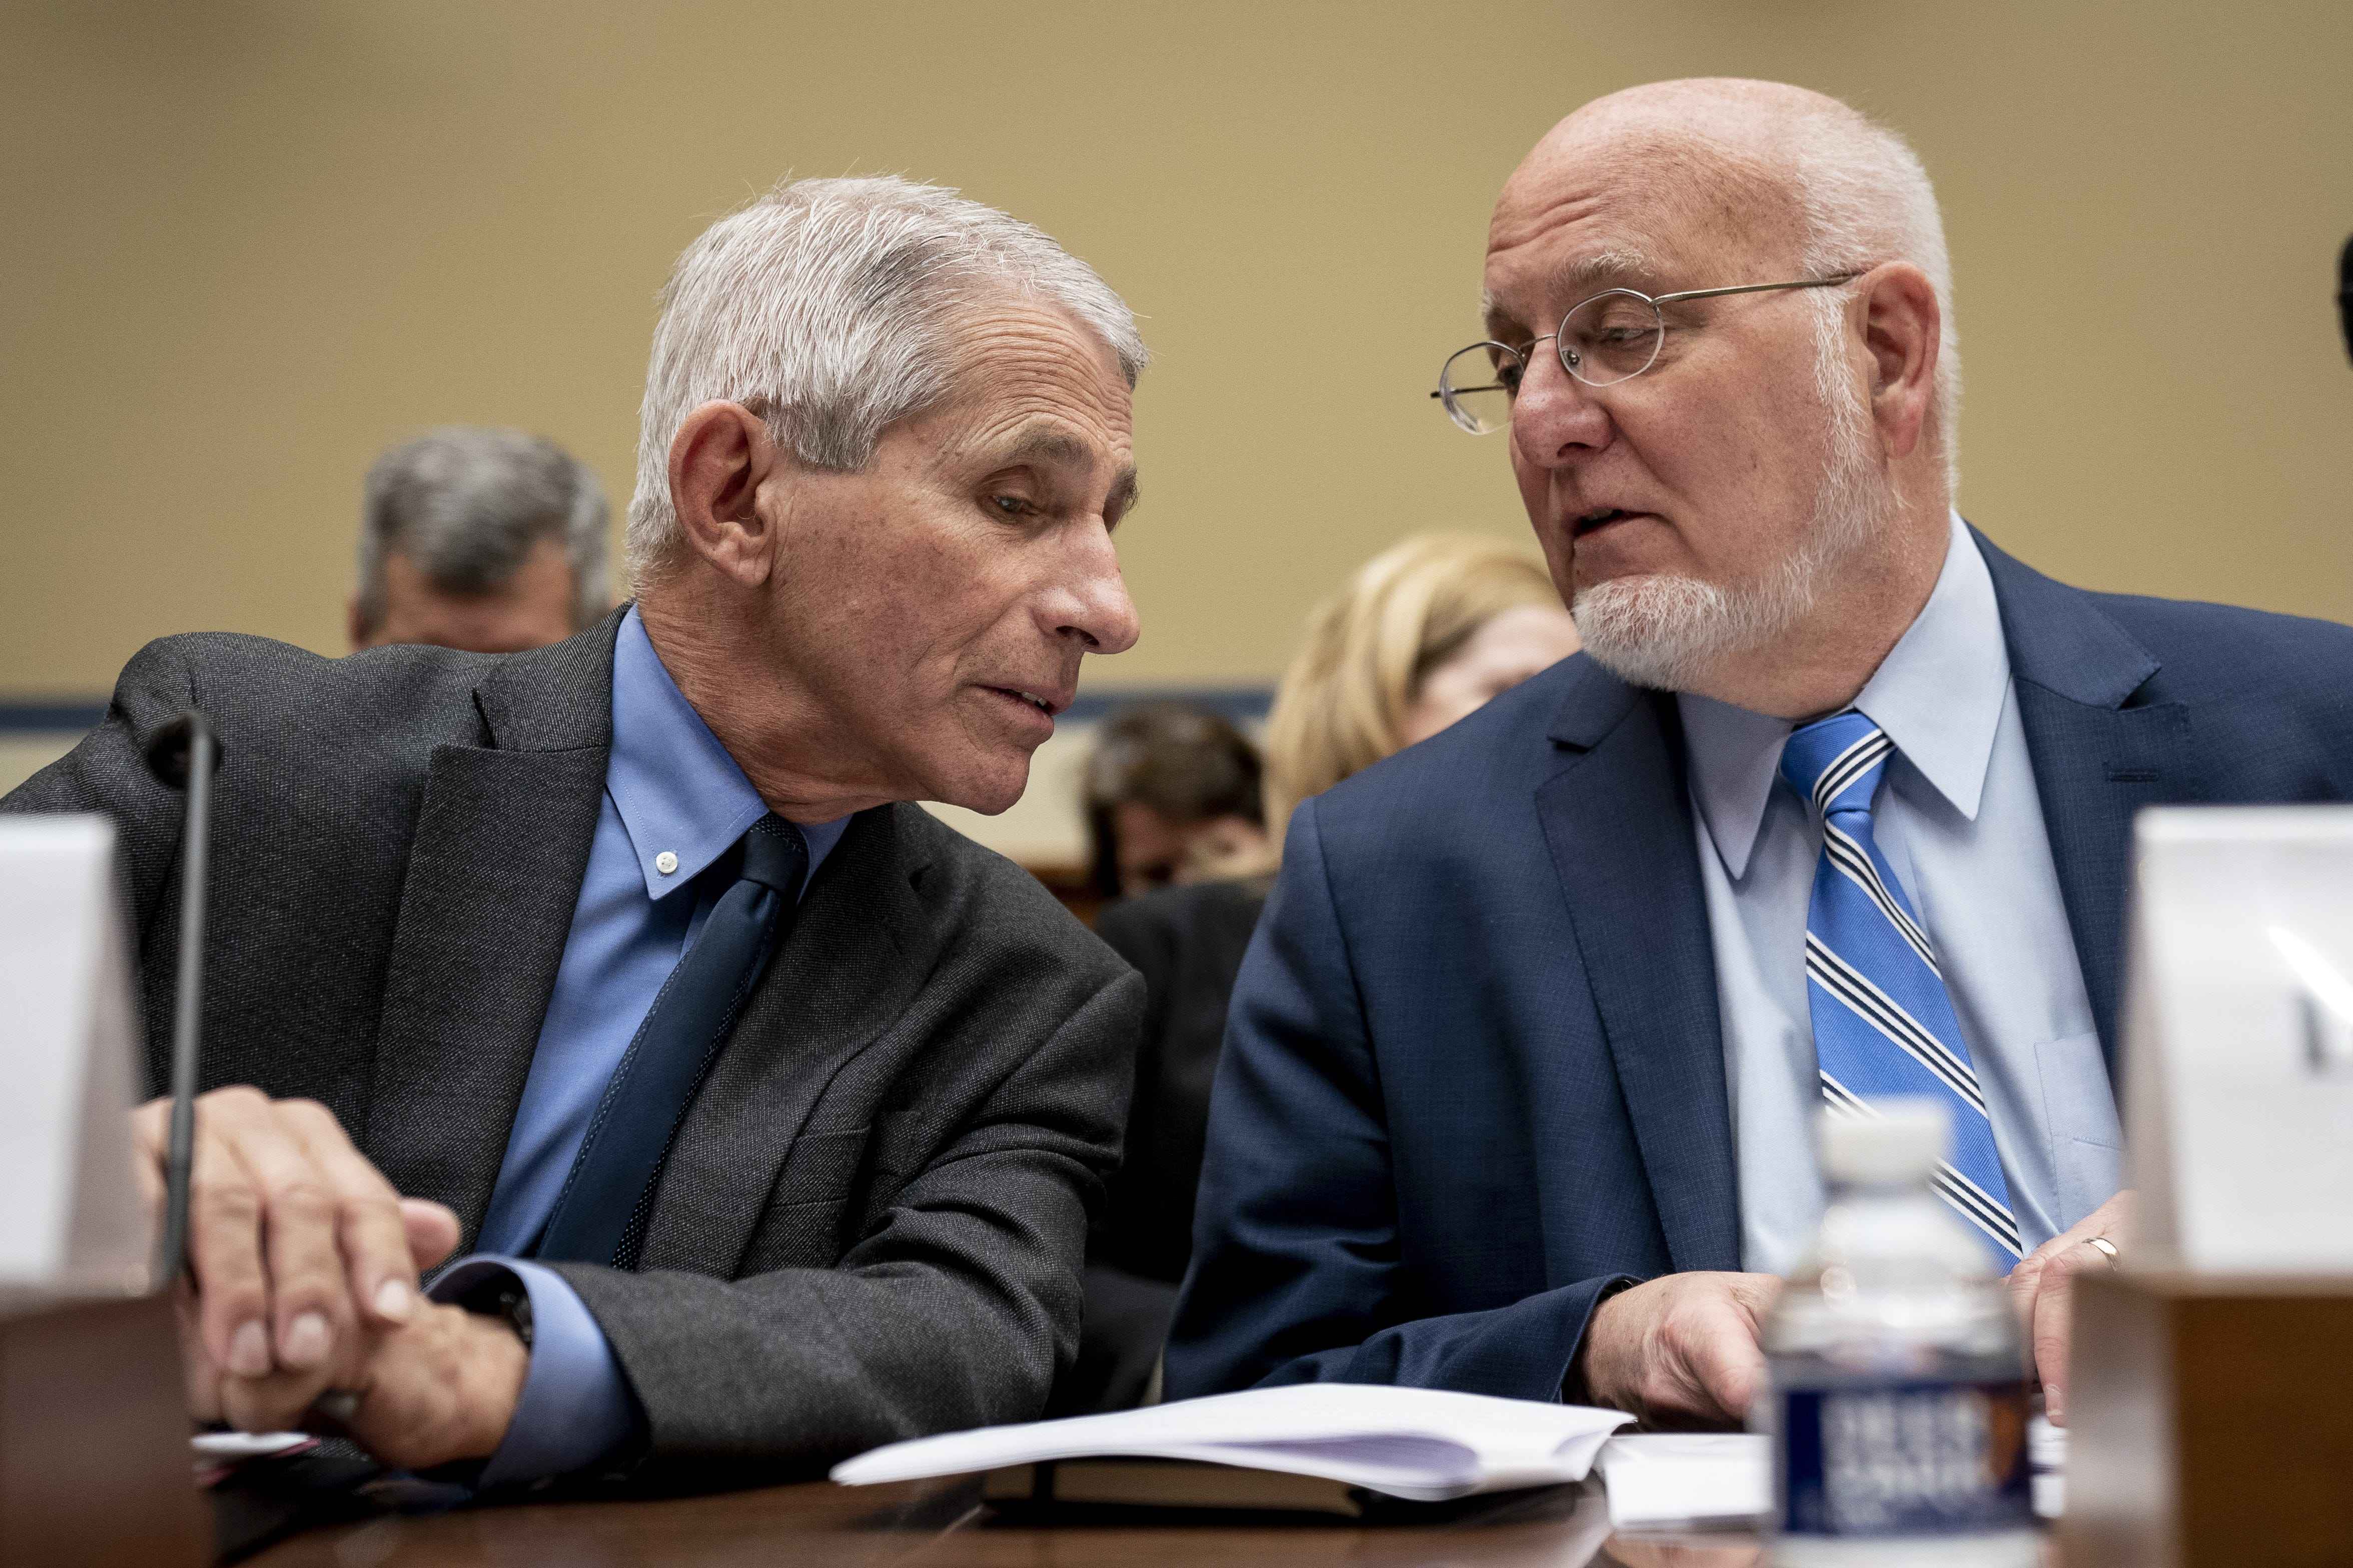 WASHINGTON, DC - MARCH 11: (L-R) Dr. Anthony Fauci, Director, National Institute of Allergy and Infectious Diseases at National Institutes of Health, and Dr. Robert Redfield, director of the Centers for Disease Control and Prevention (CDC), talk with each other at the start of a House Oversight And Reform Committee hearing concerning government preparedness and response to the coronavirus, in the Rayburn House Office Building on Capitol Hill March 11, 2020 in Washington, DC. Since December 2019, coronavirus (COVID-19) has infected more than 109,000 people and killed more than 3,800 people in 105 countries. (Photo by Drew Angerer/Getty Images) ORG XMIT: 775494460 ORIG FILE ID: 1206551329